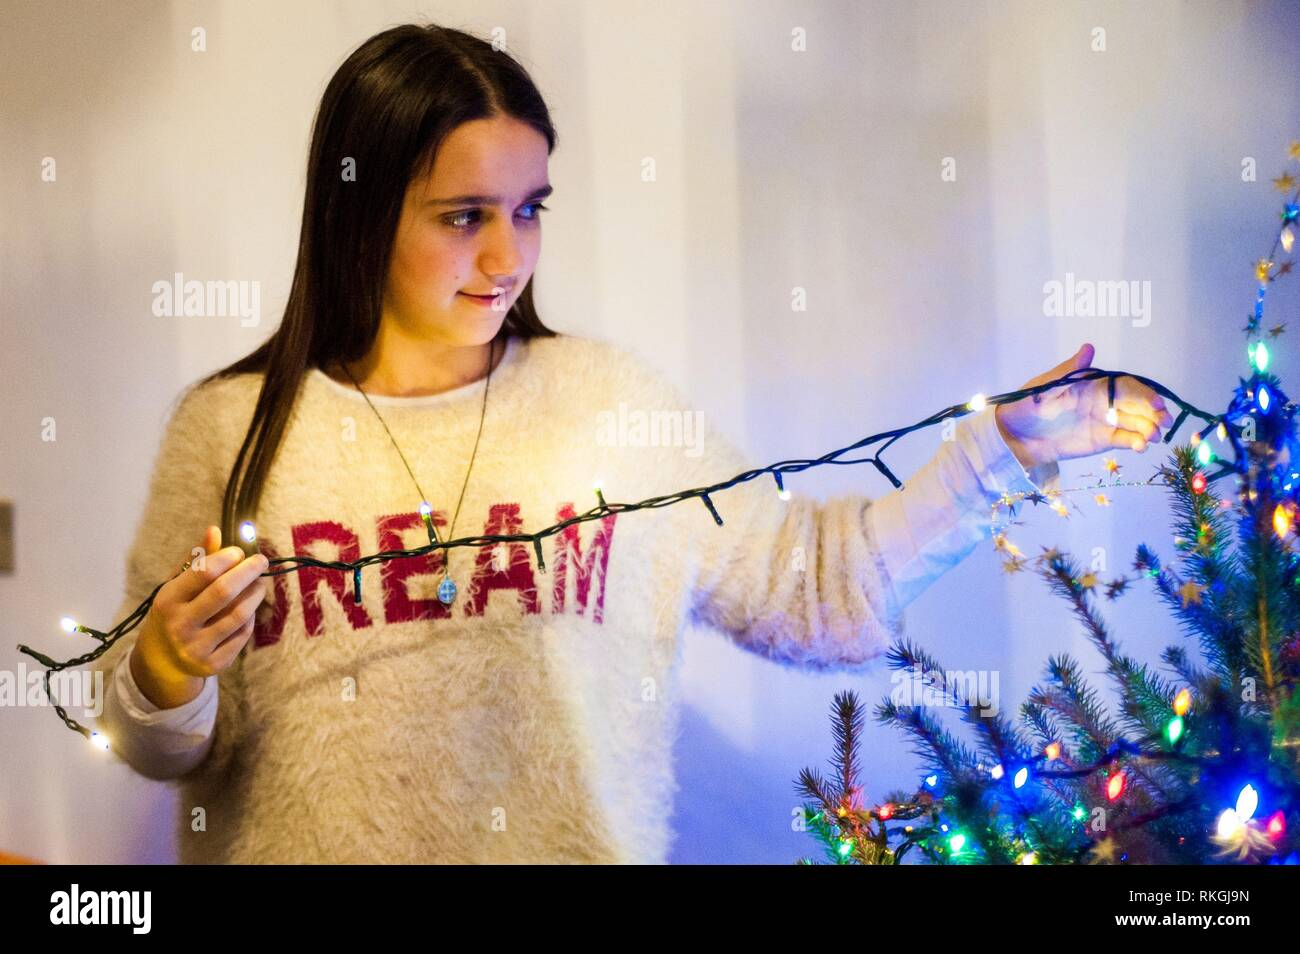 girl at home while decorating Christmas tree. - Stock Image